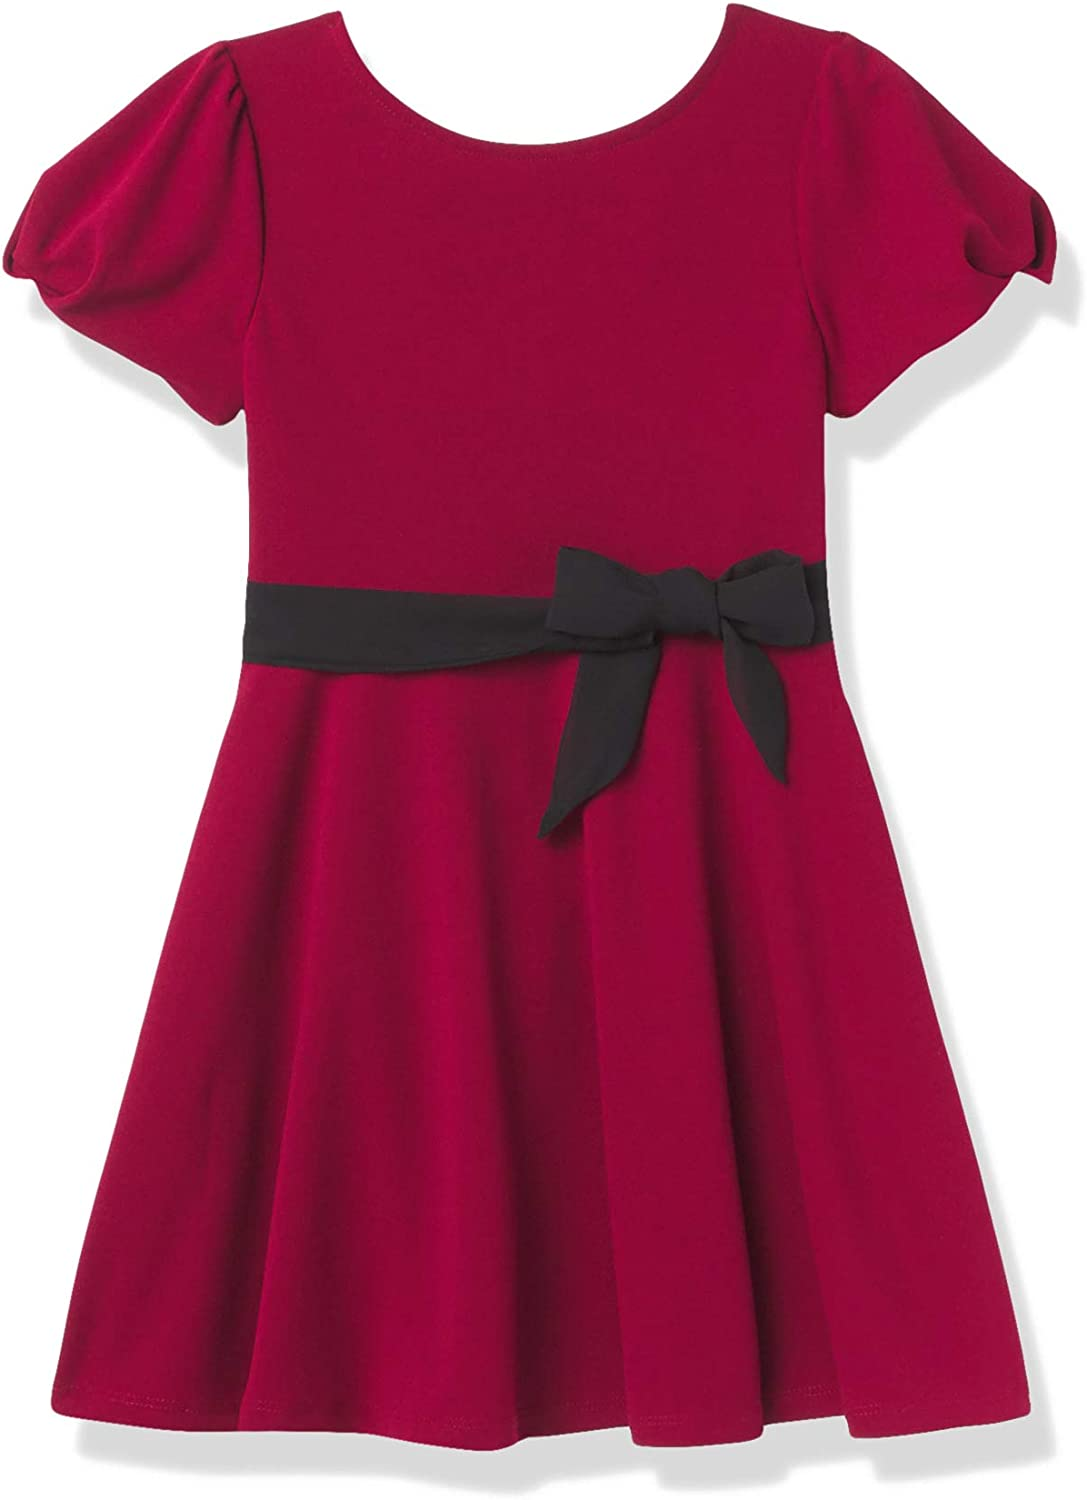 Speechless Girls' Short Sleeve Fit and Flare Dress